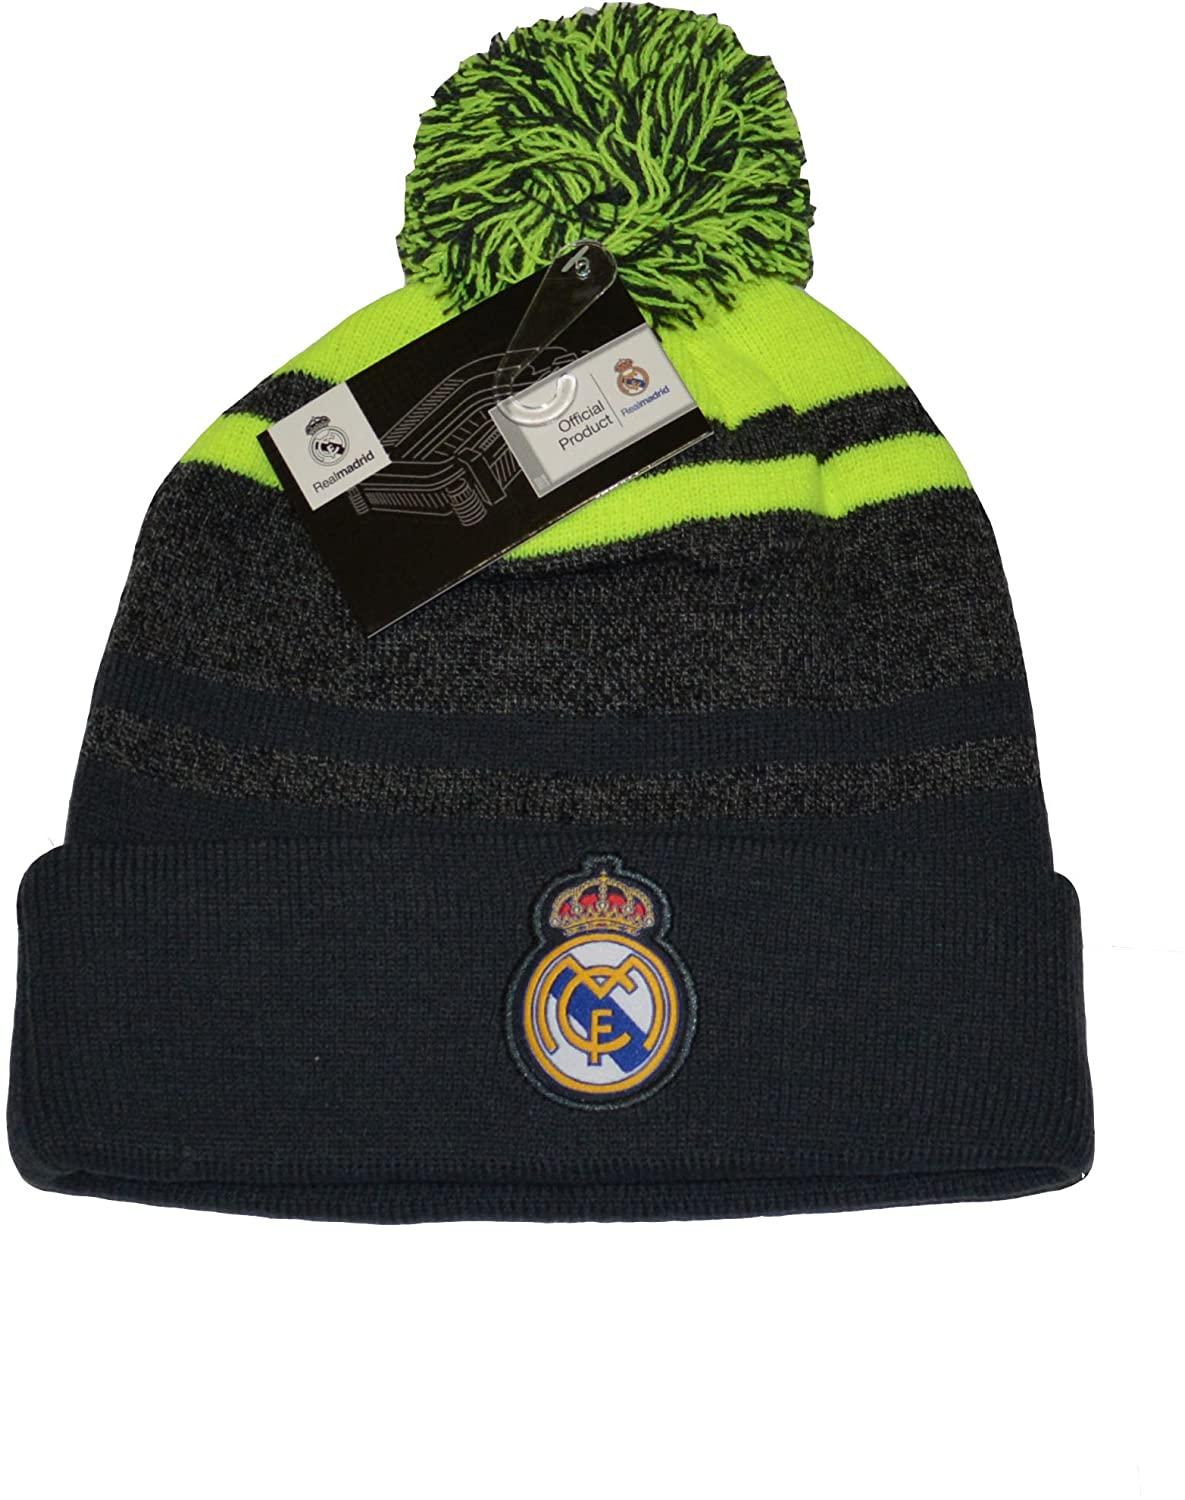 Real Madrid Fc Beanie Pom Pom Skull Cap Hat New Season 2015-2016